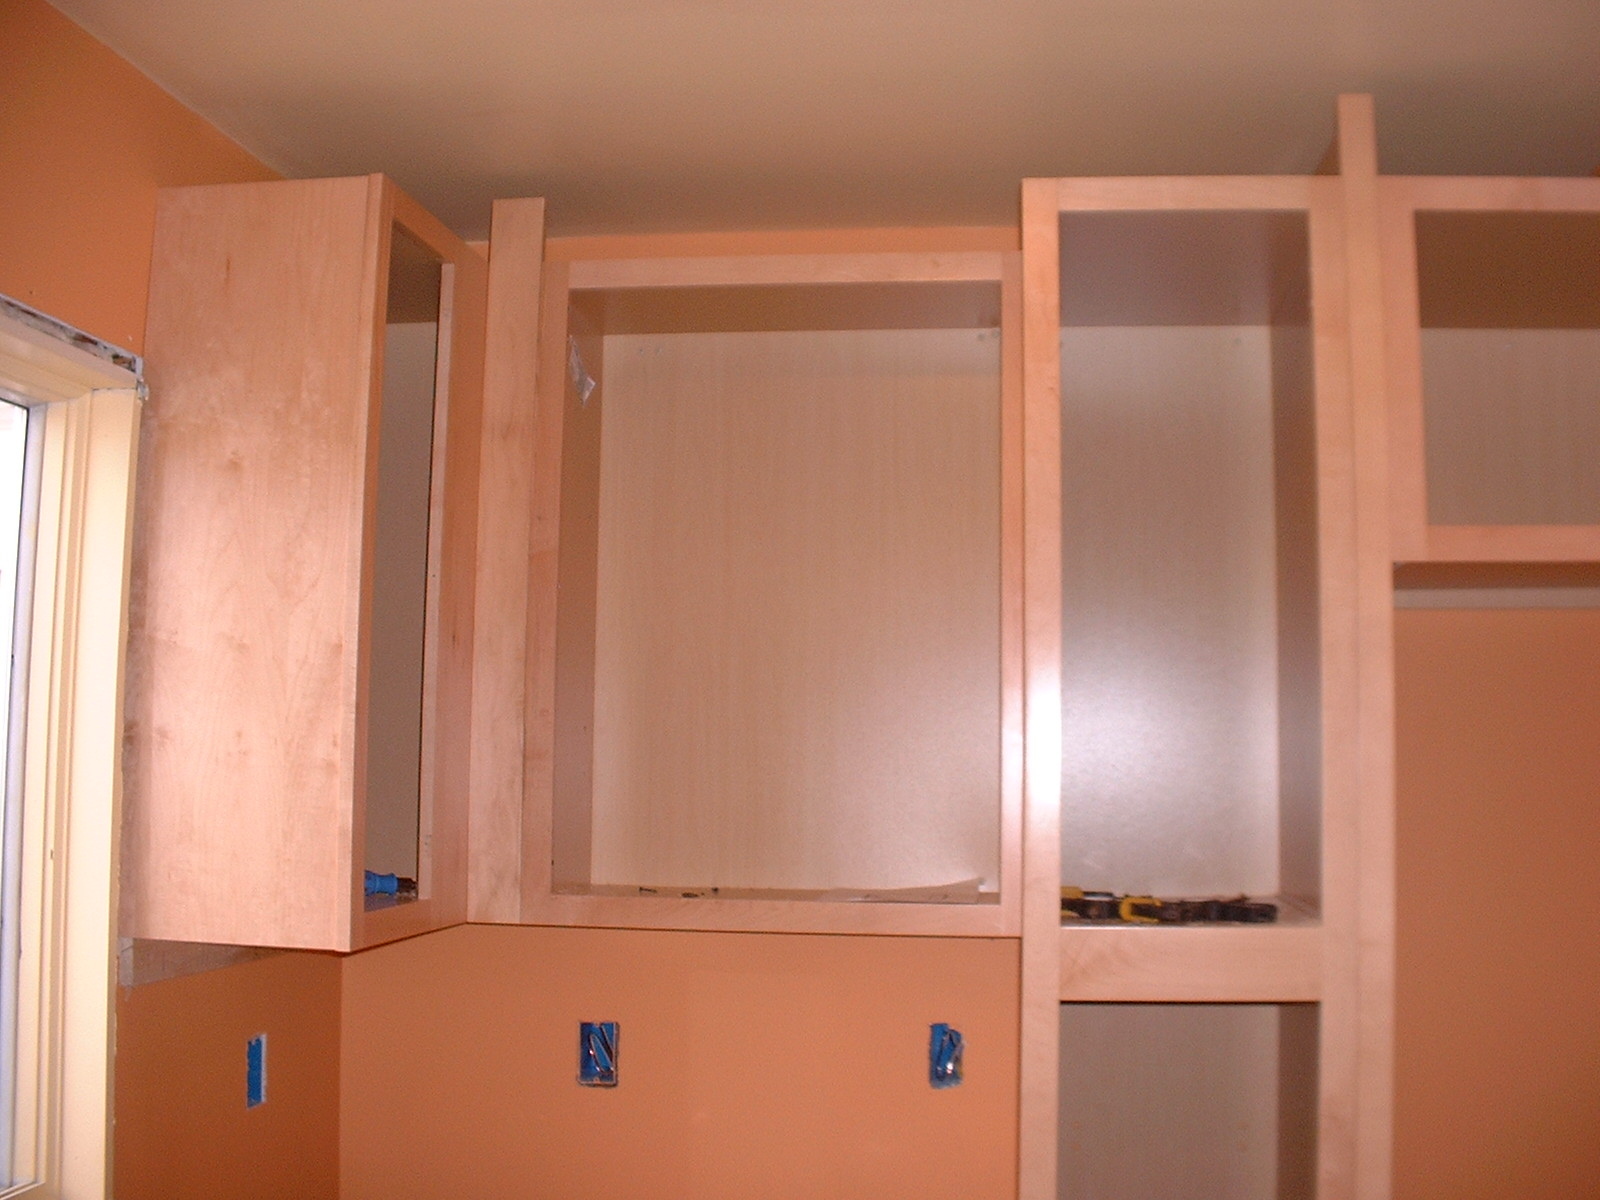 The upper cabinets are almost finished.